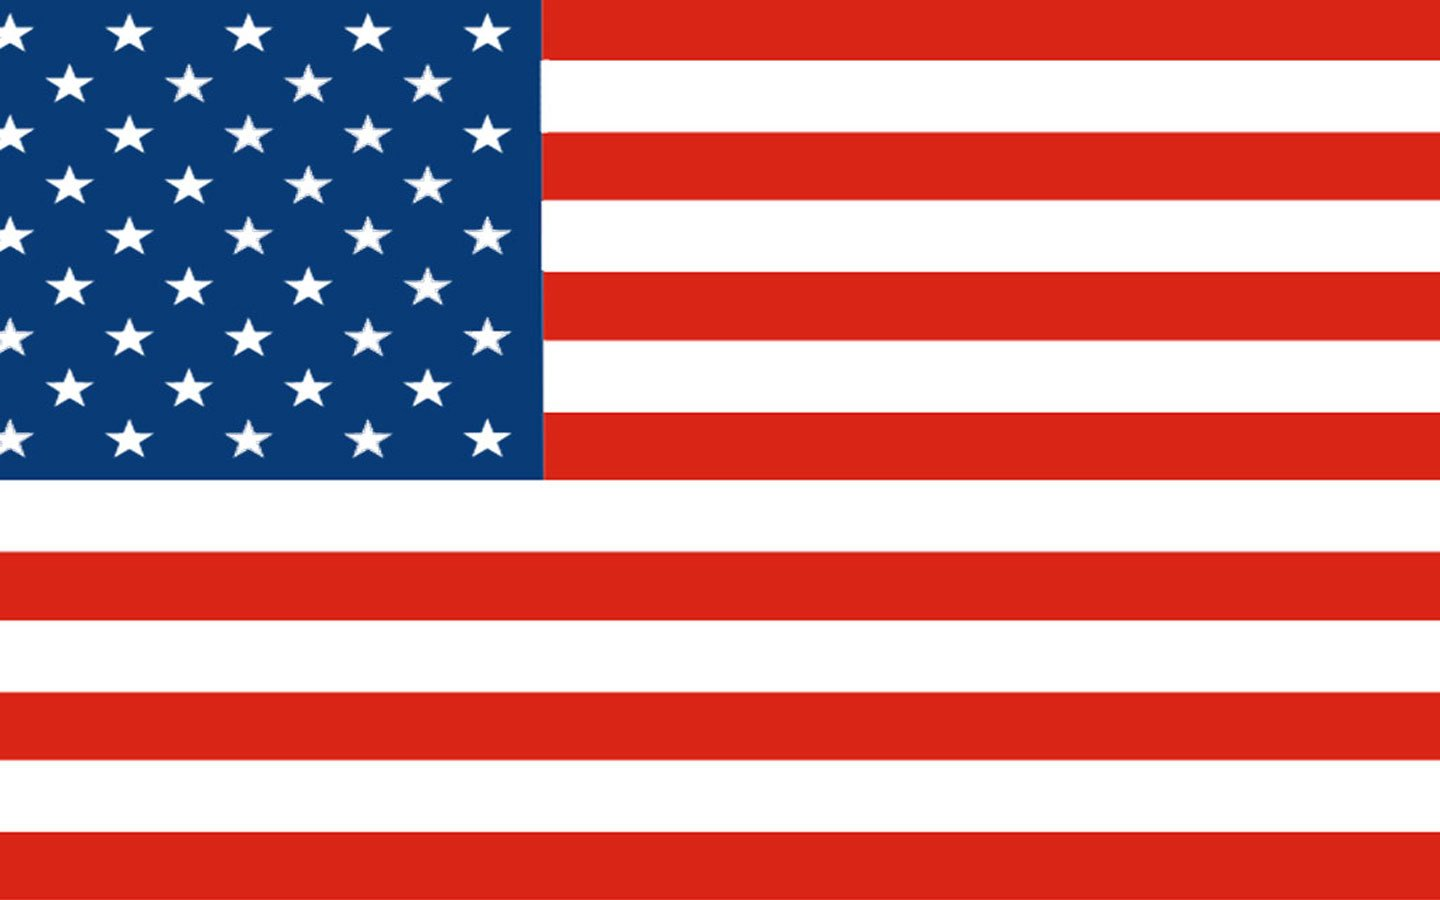 Us Flag Images Group with 64 items 1440x900